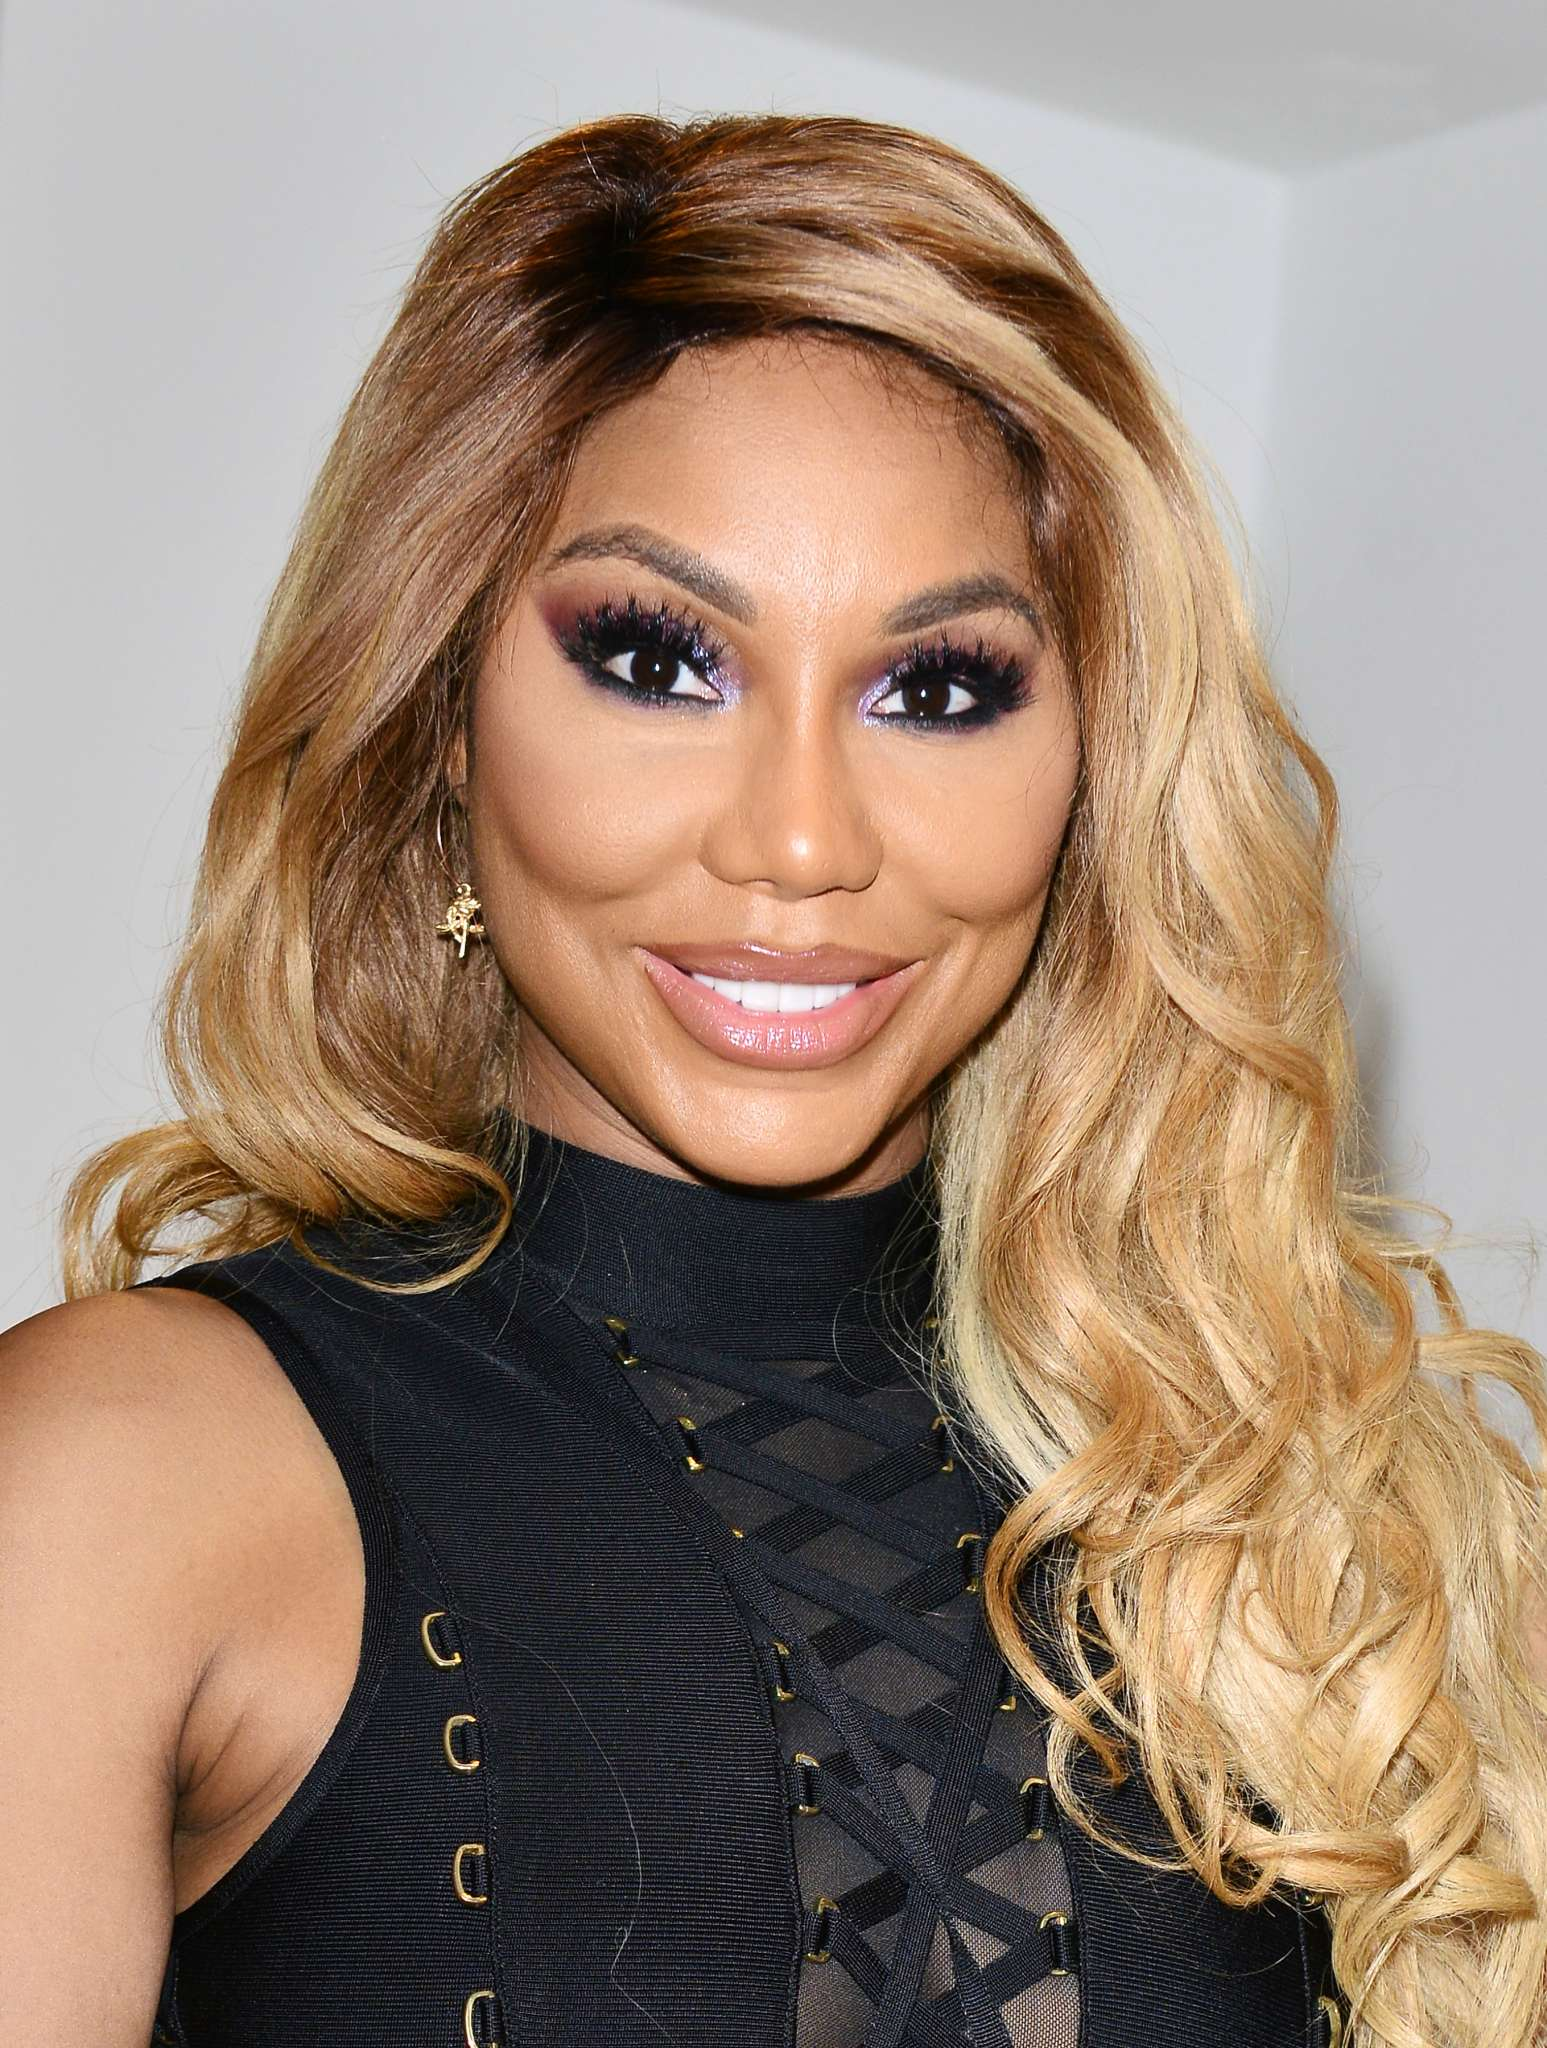 tamar-braxton-has-fans-saying-they-are-proud-of-her-check-out-her-post-here